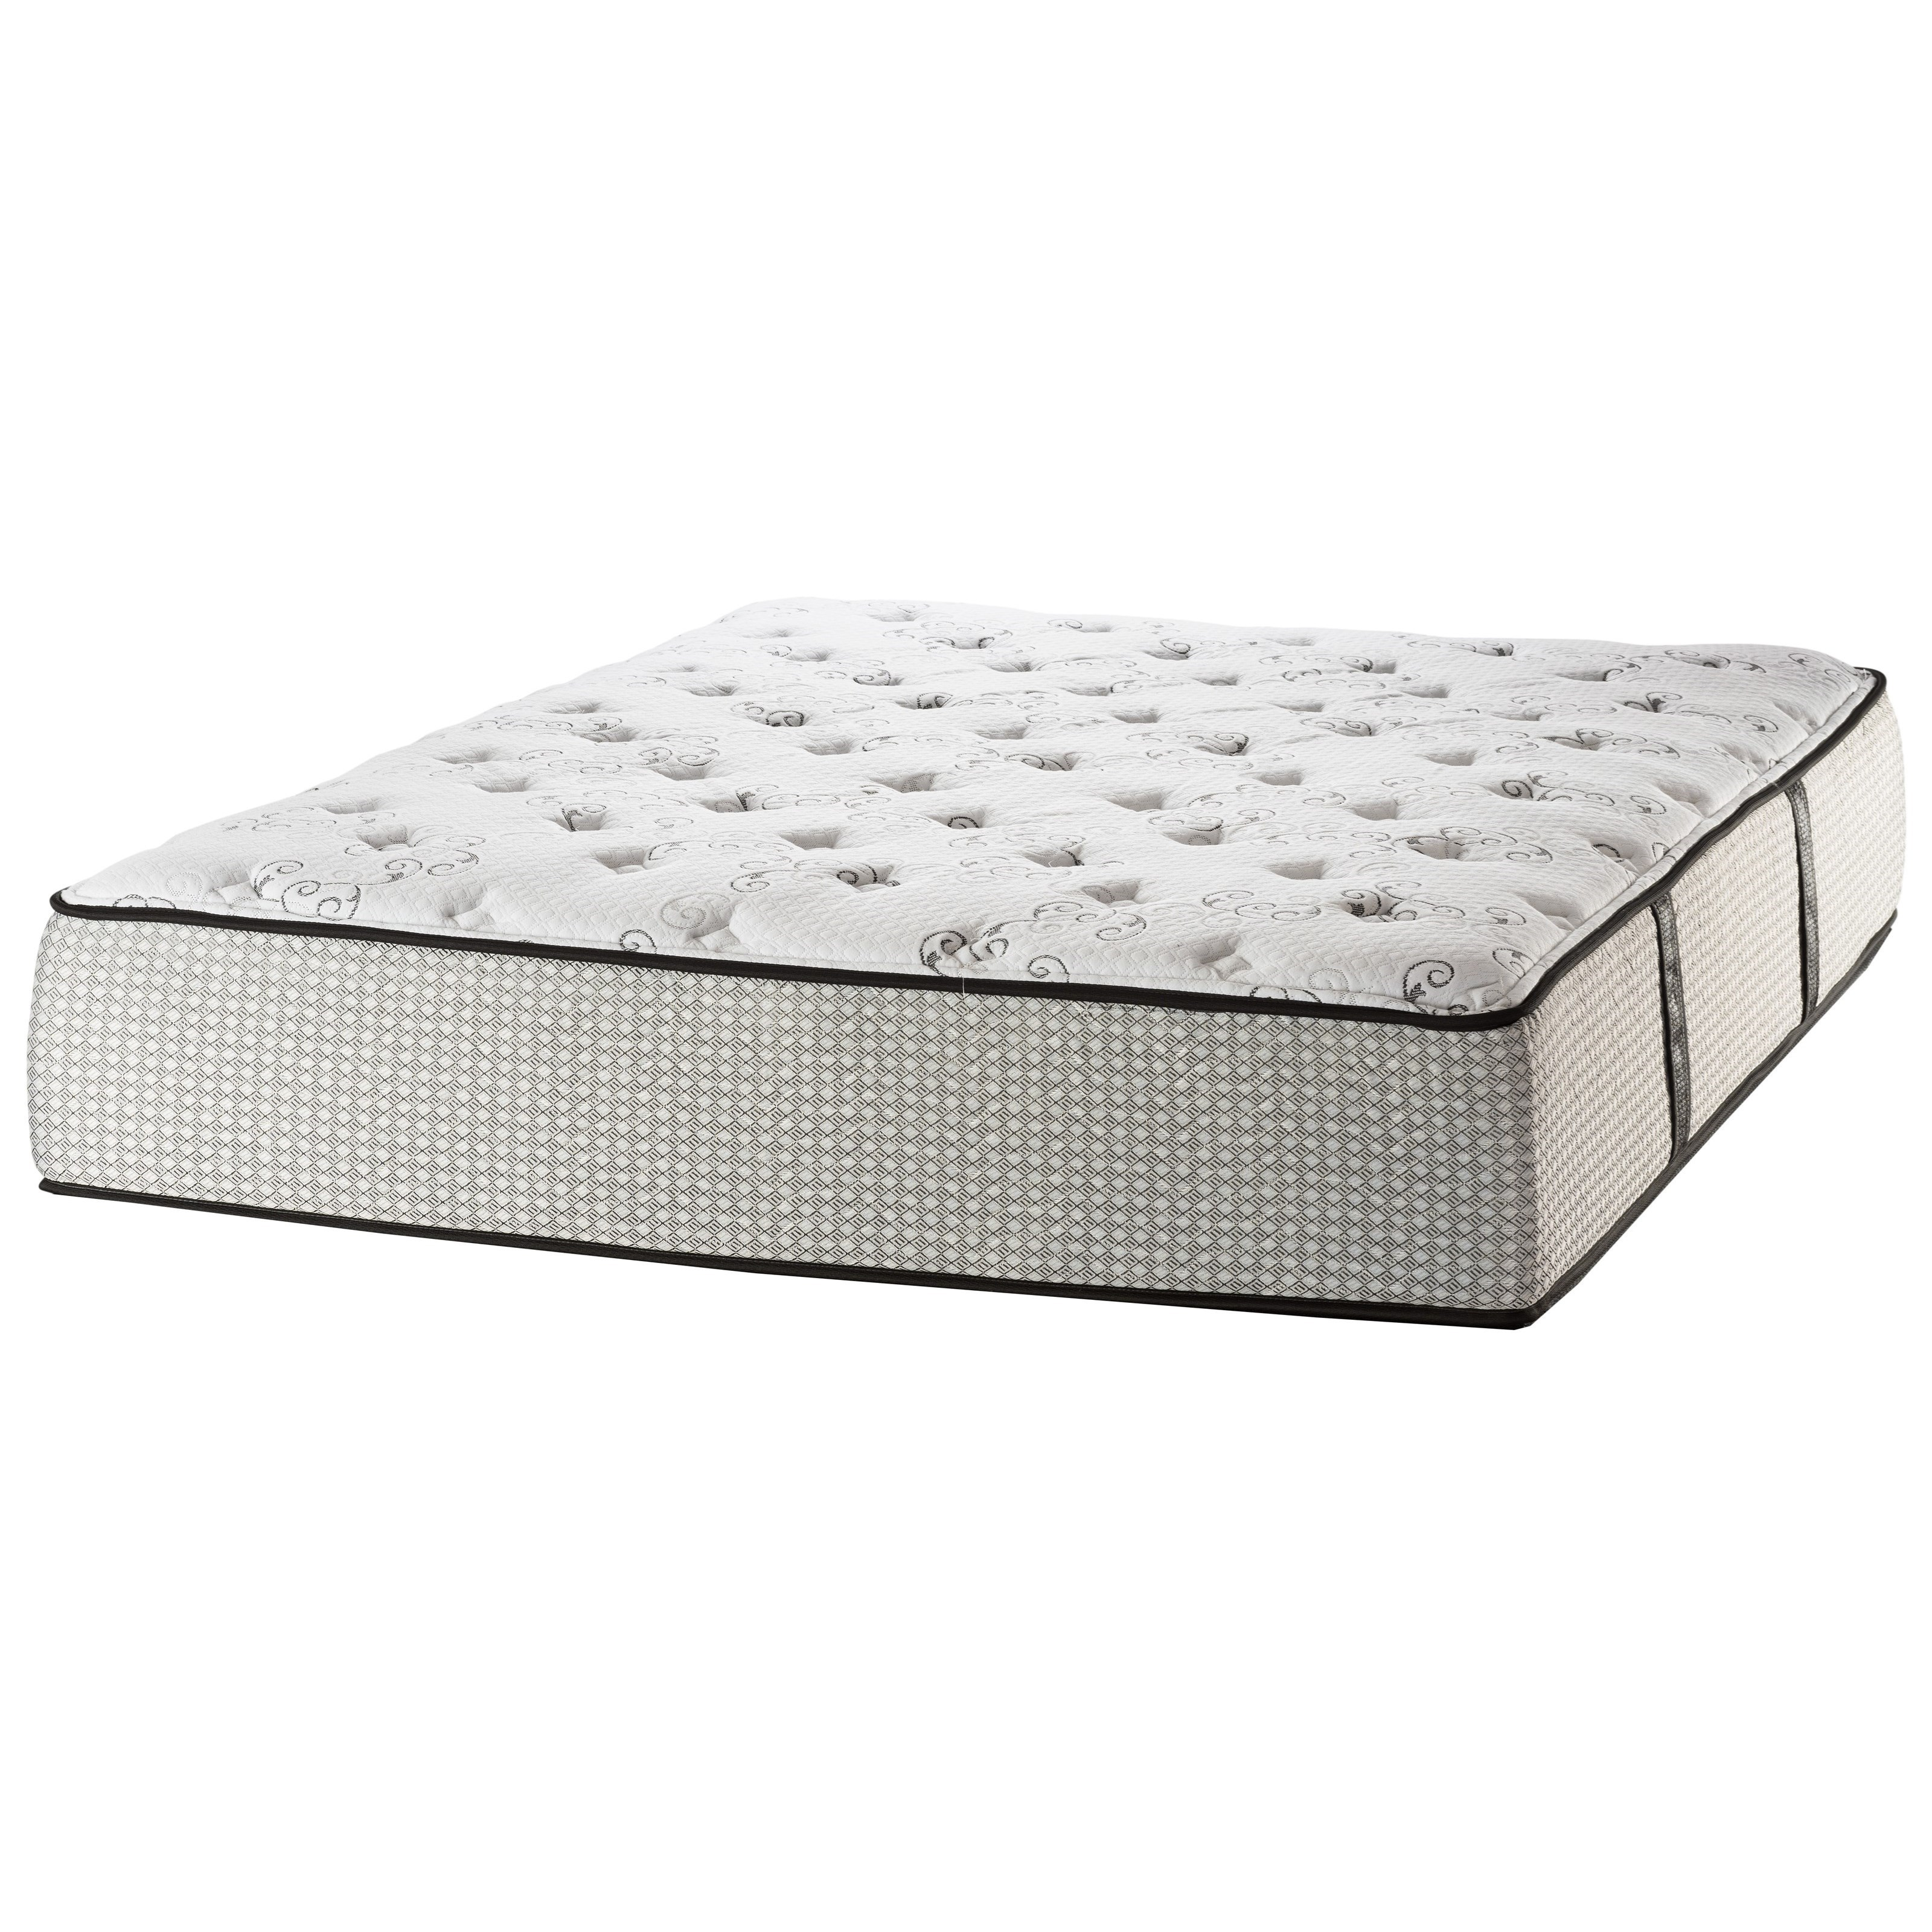 White Dove Mattress Cambridge Grand Ave Lux Firm Twin XL Luxury Firm Mattress - Item Number: LuxFirm-TXL